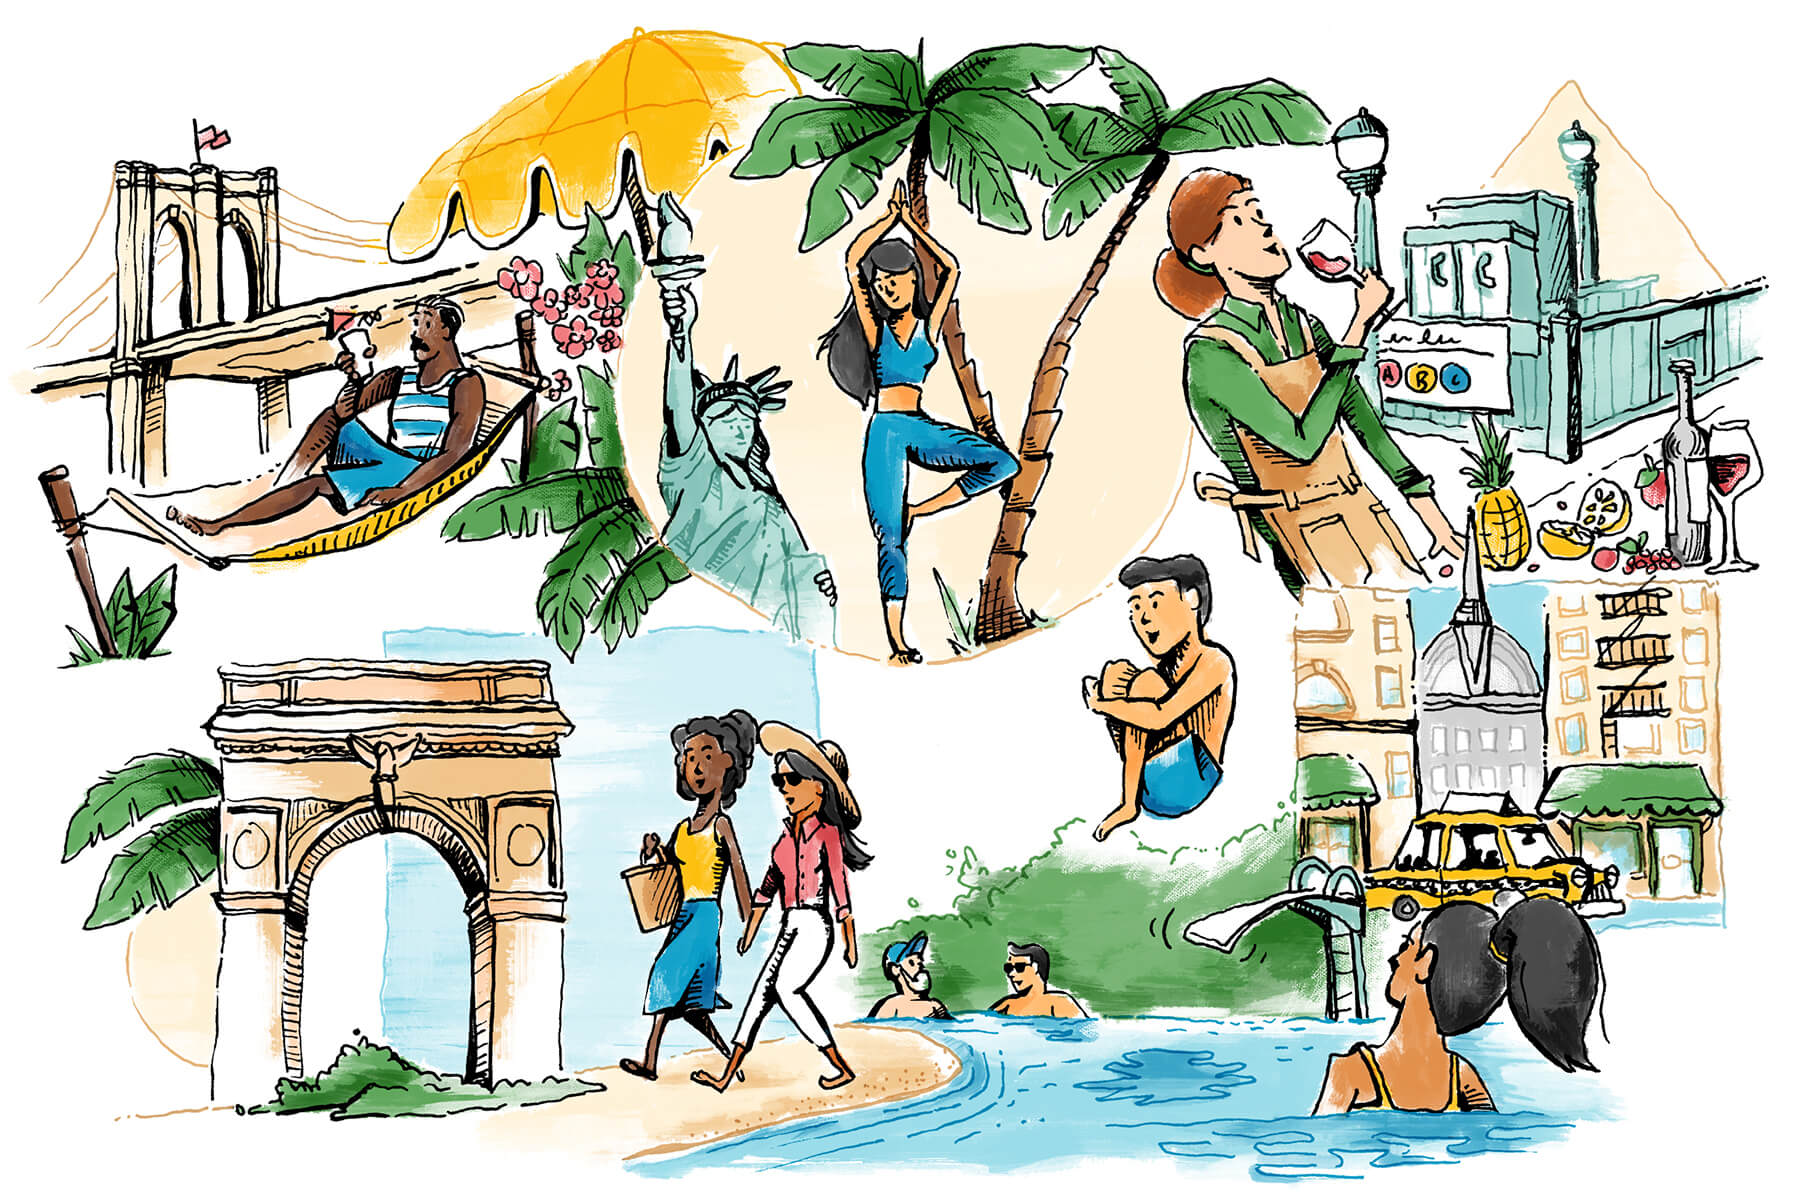 Illustrated New Yorkers from different neighborhoods going on Caribbean vacations with NYC settings in the background